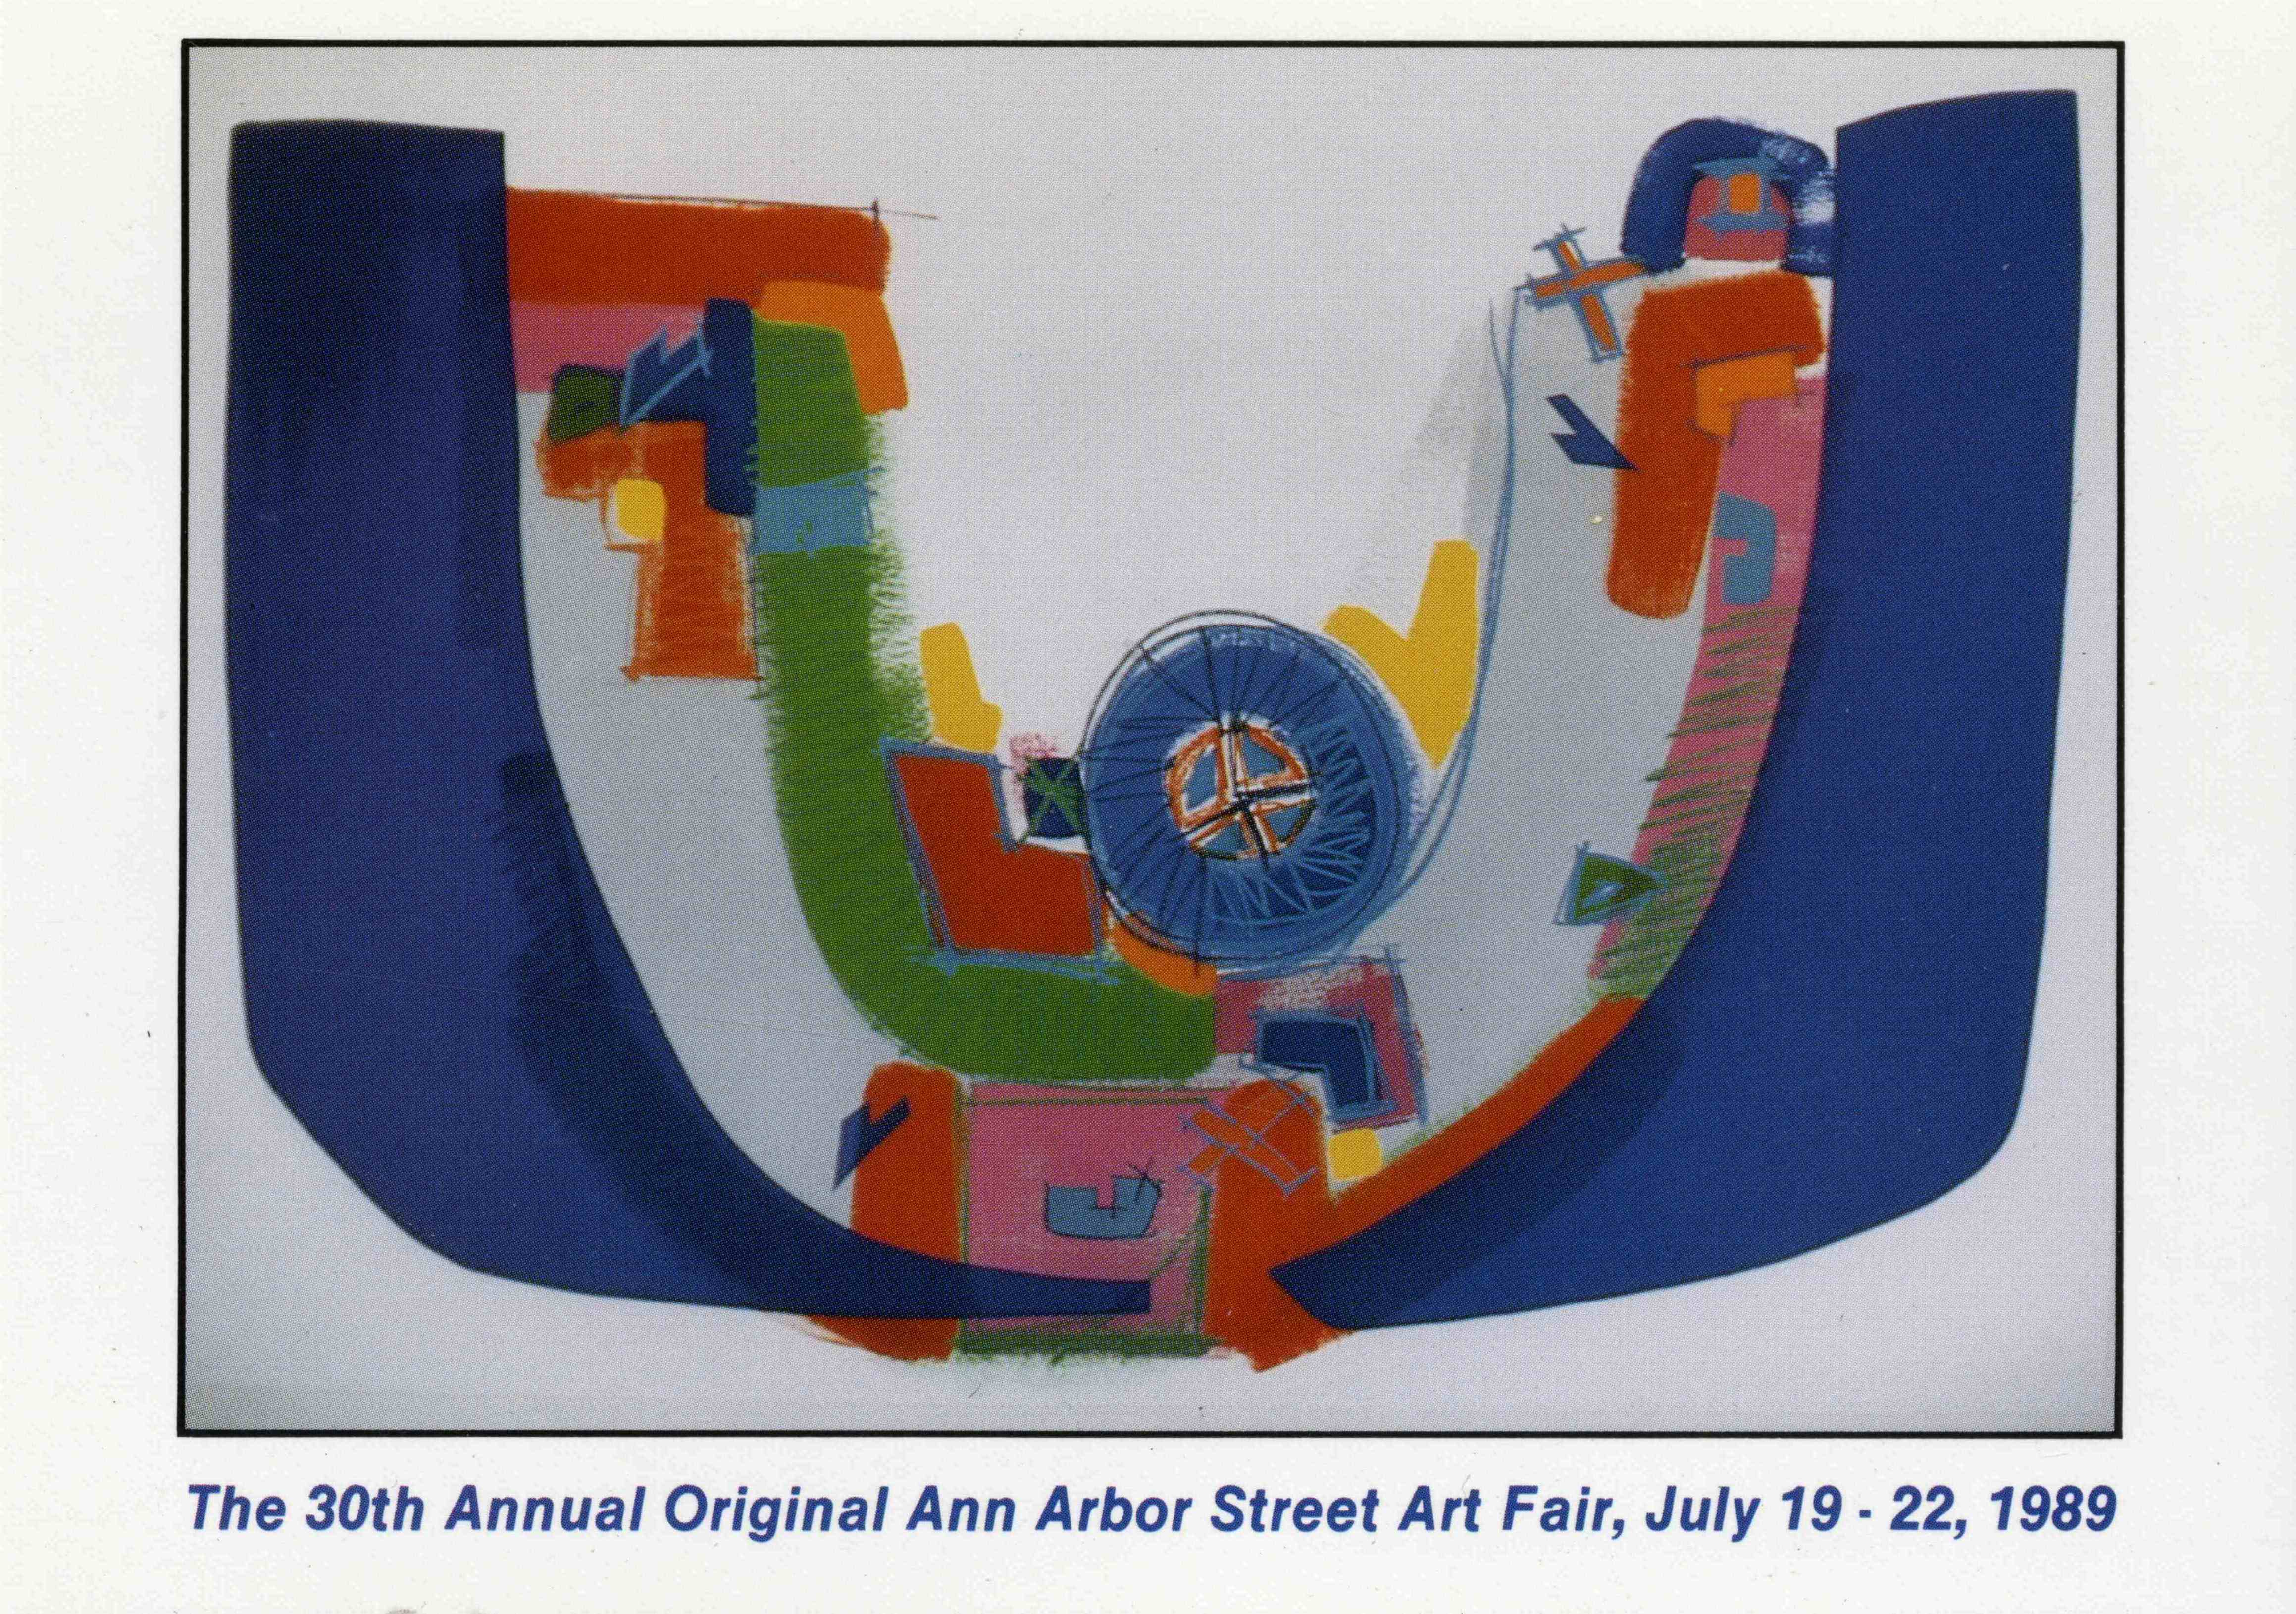 Postcard of the 30th Annual Street Art Fair, 1989 image